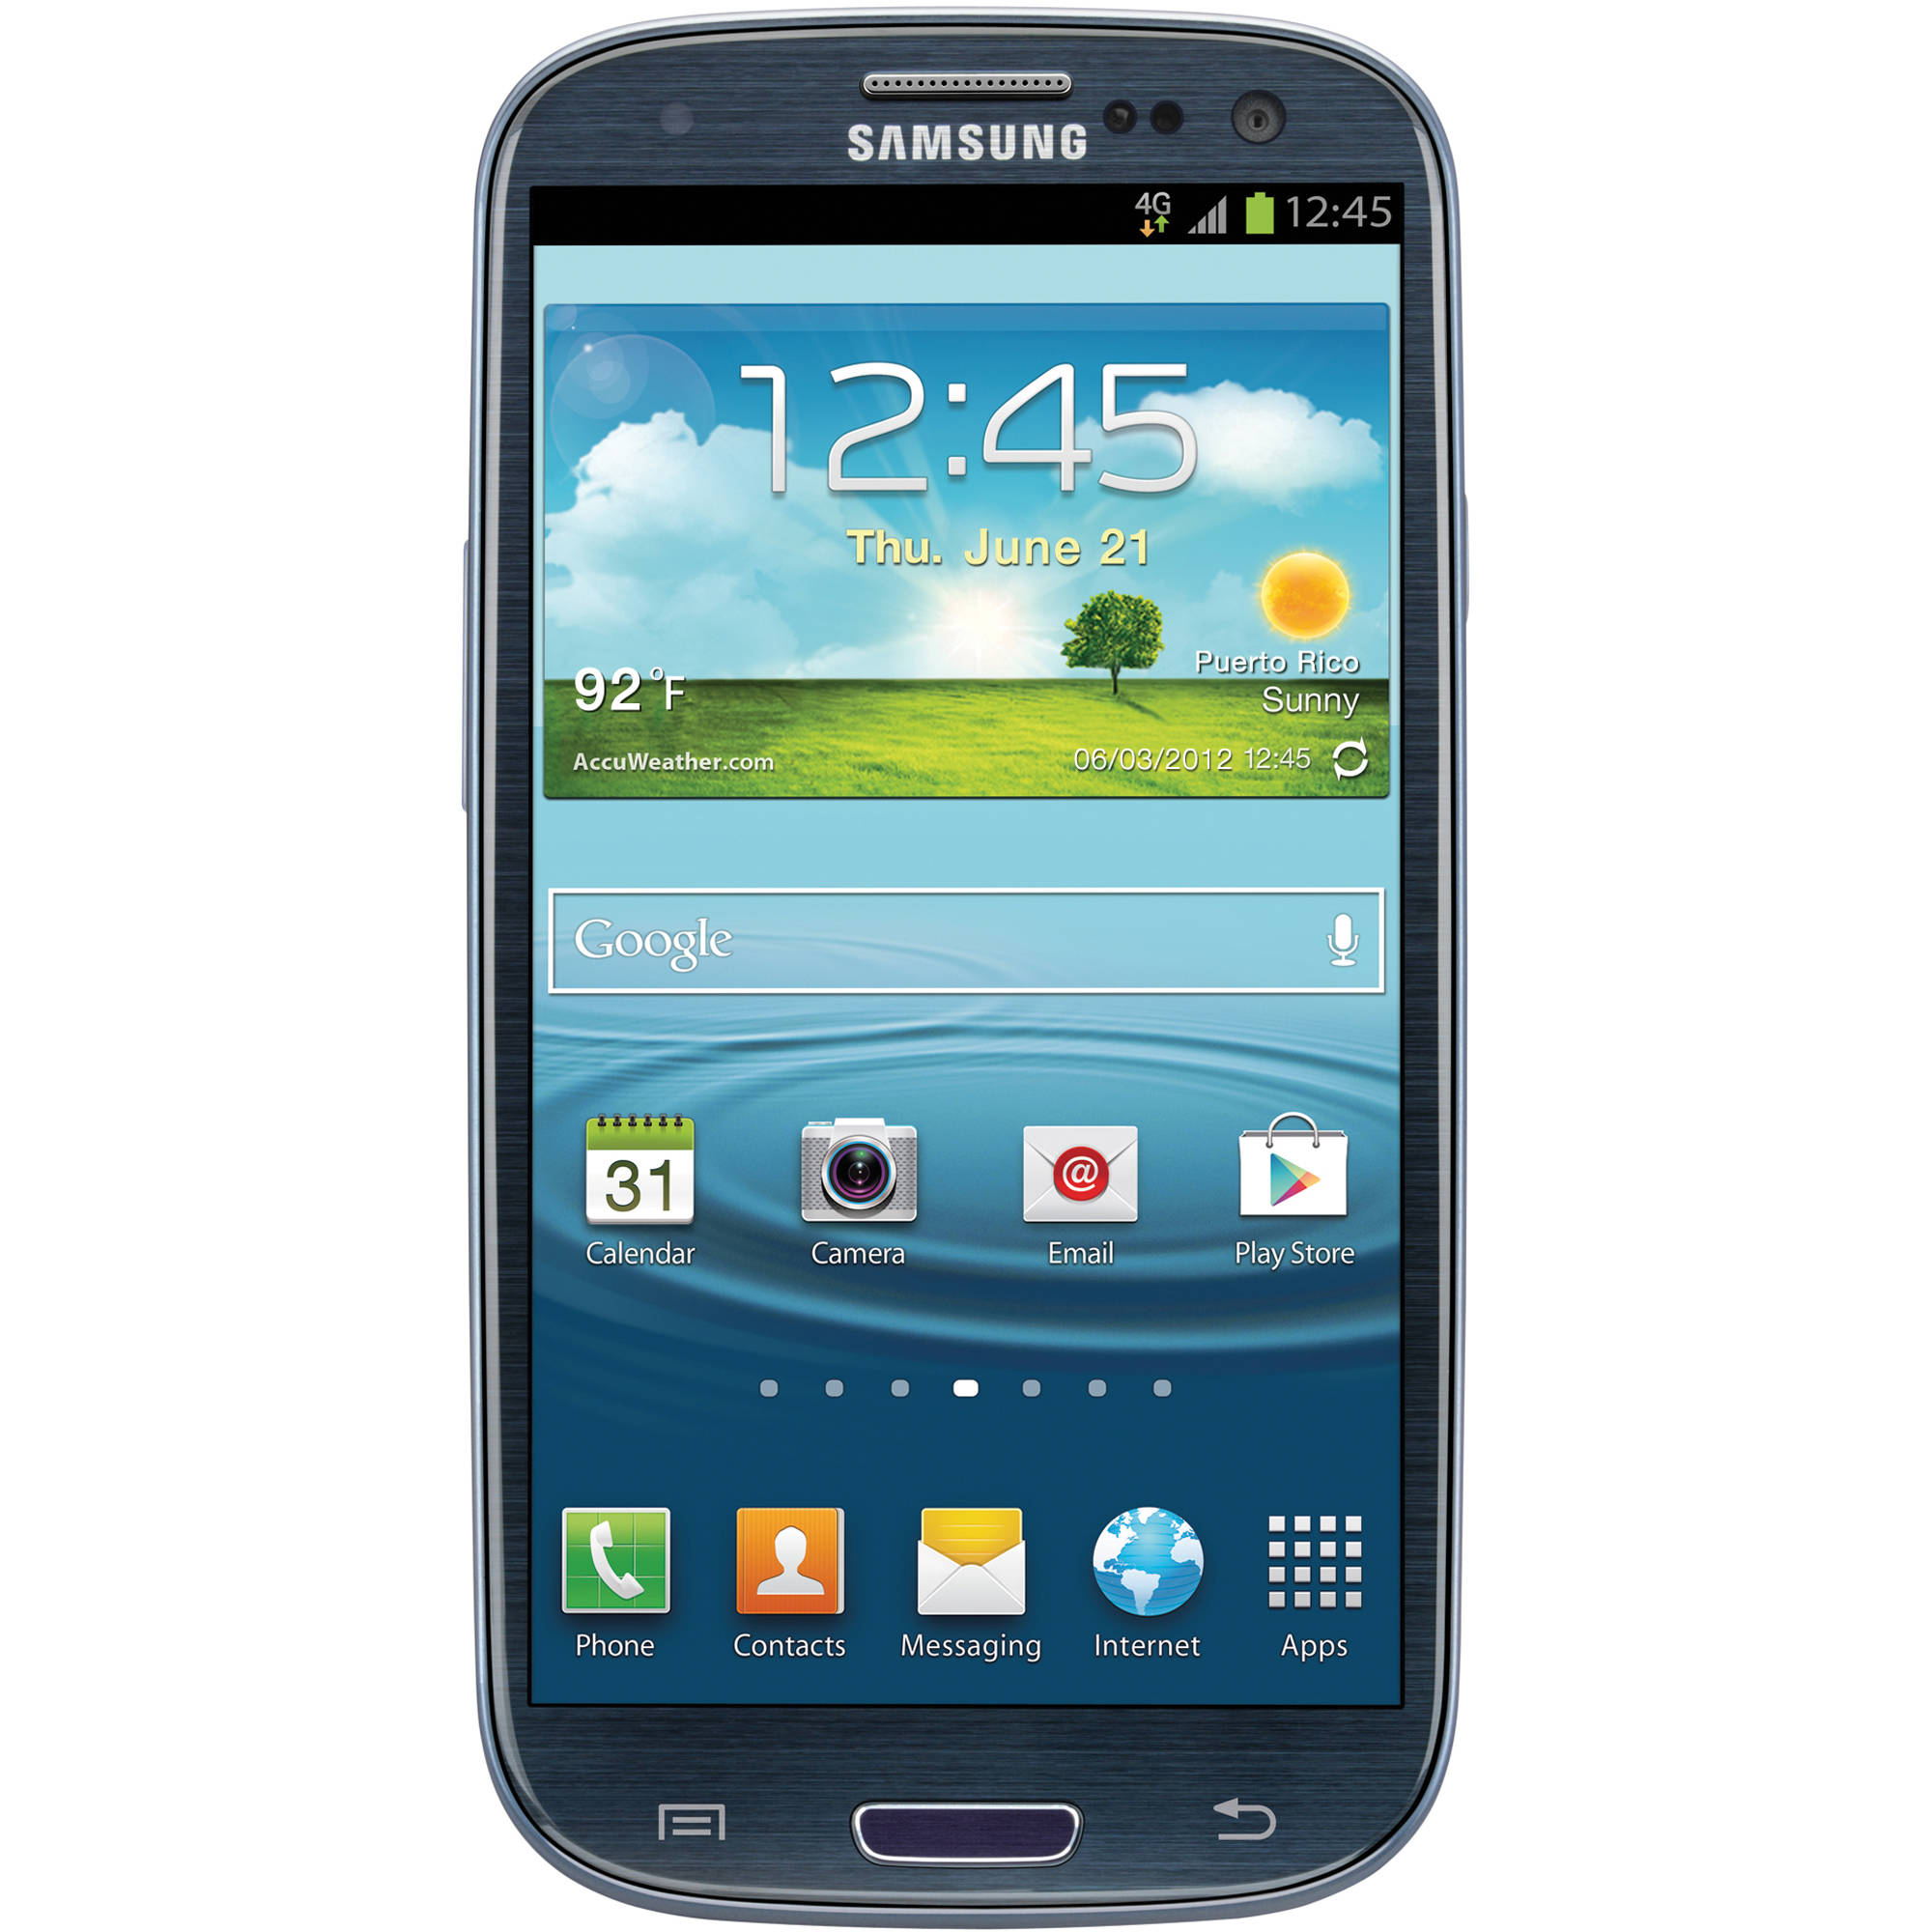 samsung galaxy s iii 16gb at t branded smartphone i747 blue. Black Bedroom Furniture Sets. Home Design Ideas